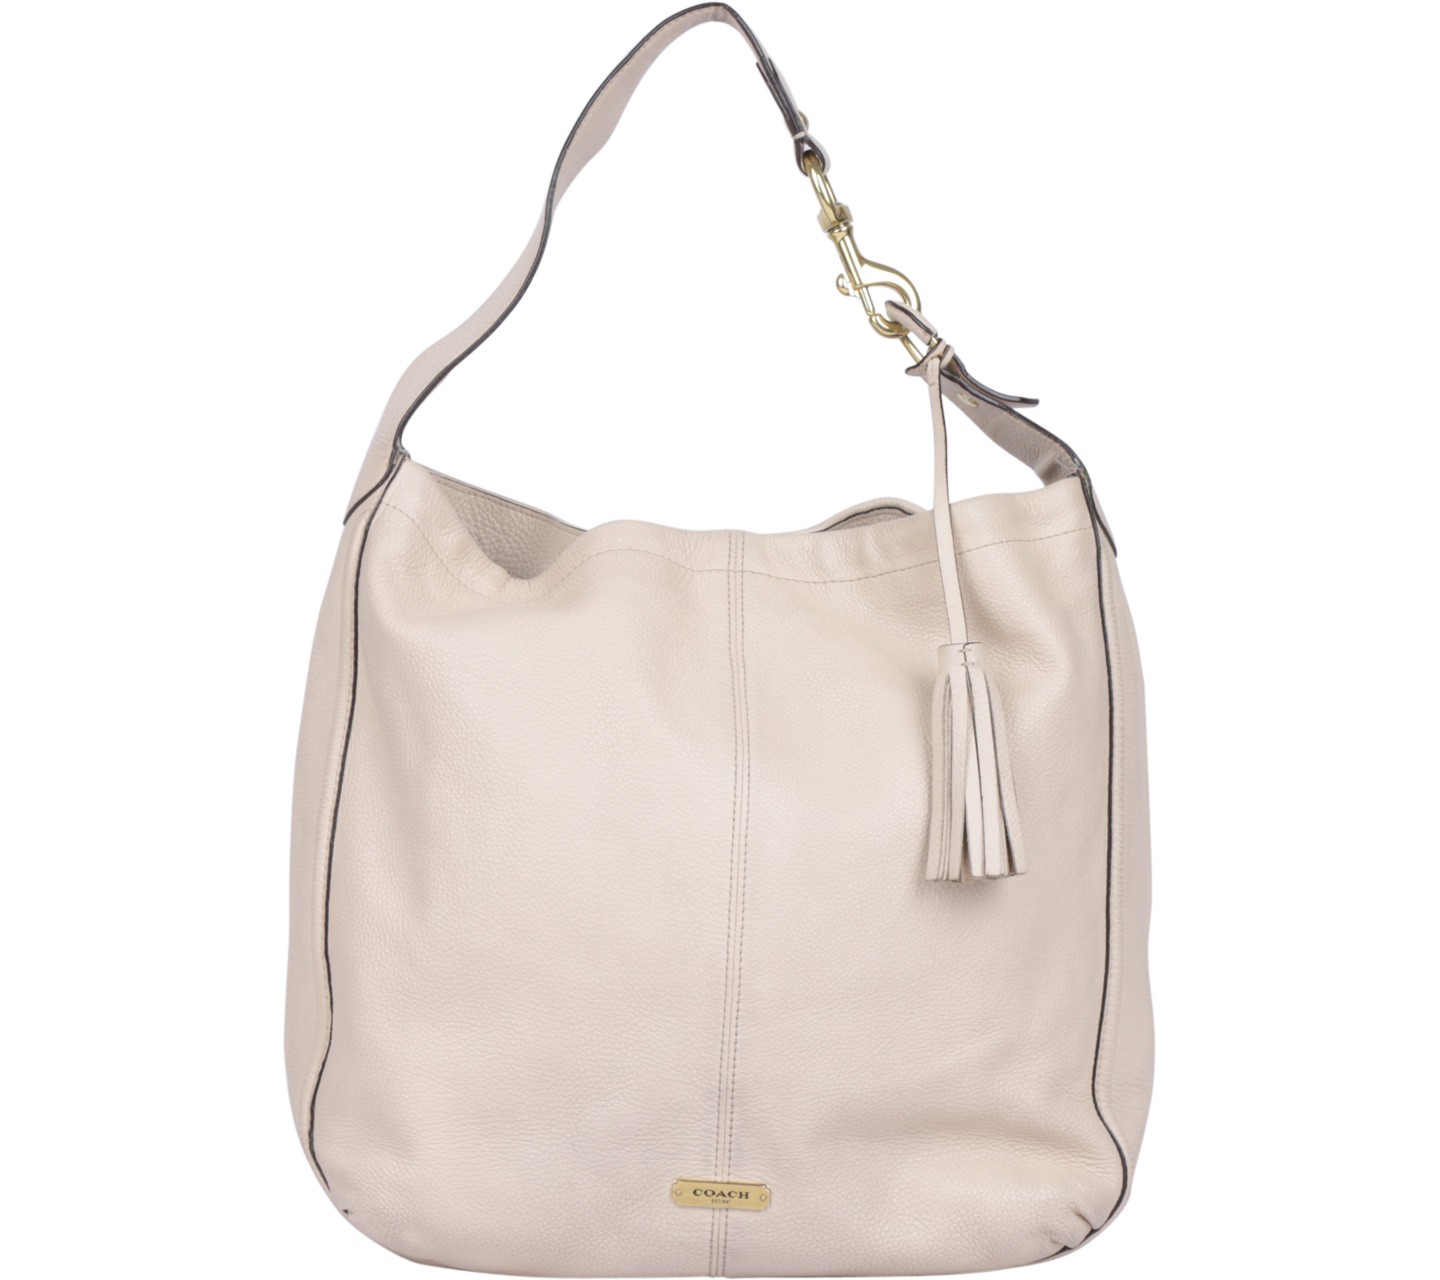 Cream Avery Leather Hobo Shoulder Bag